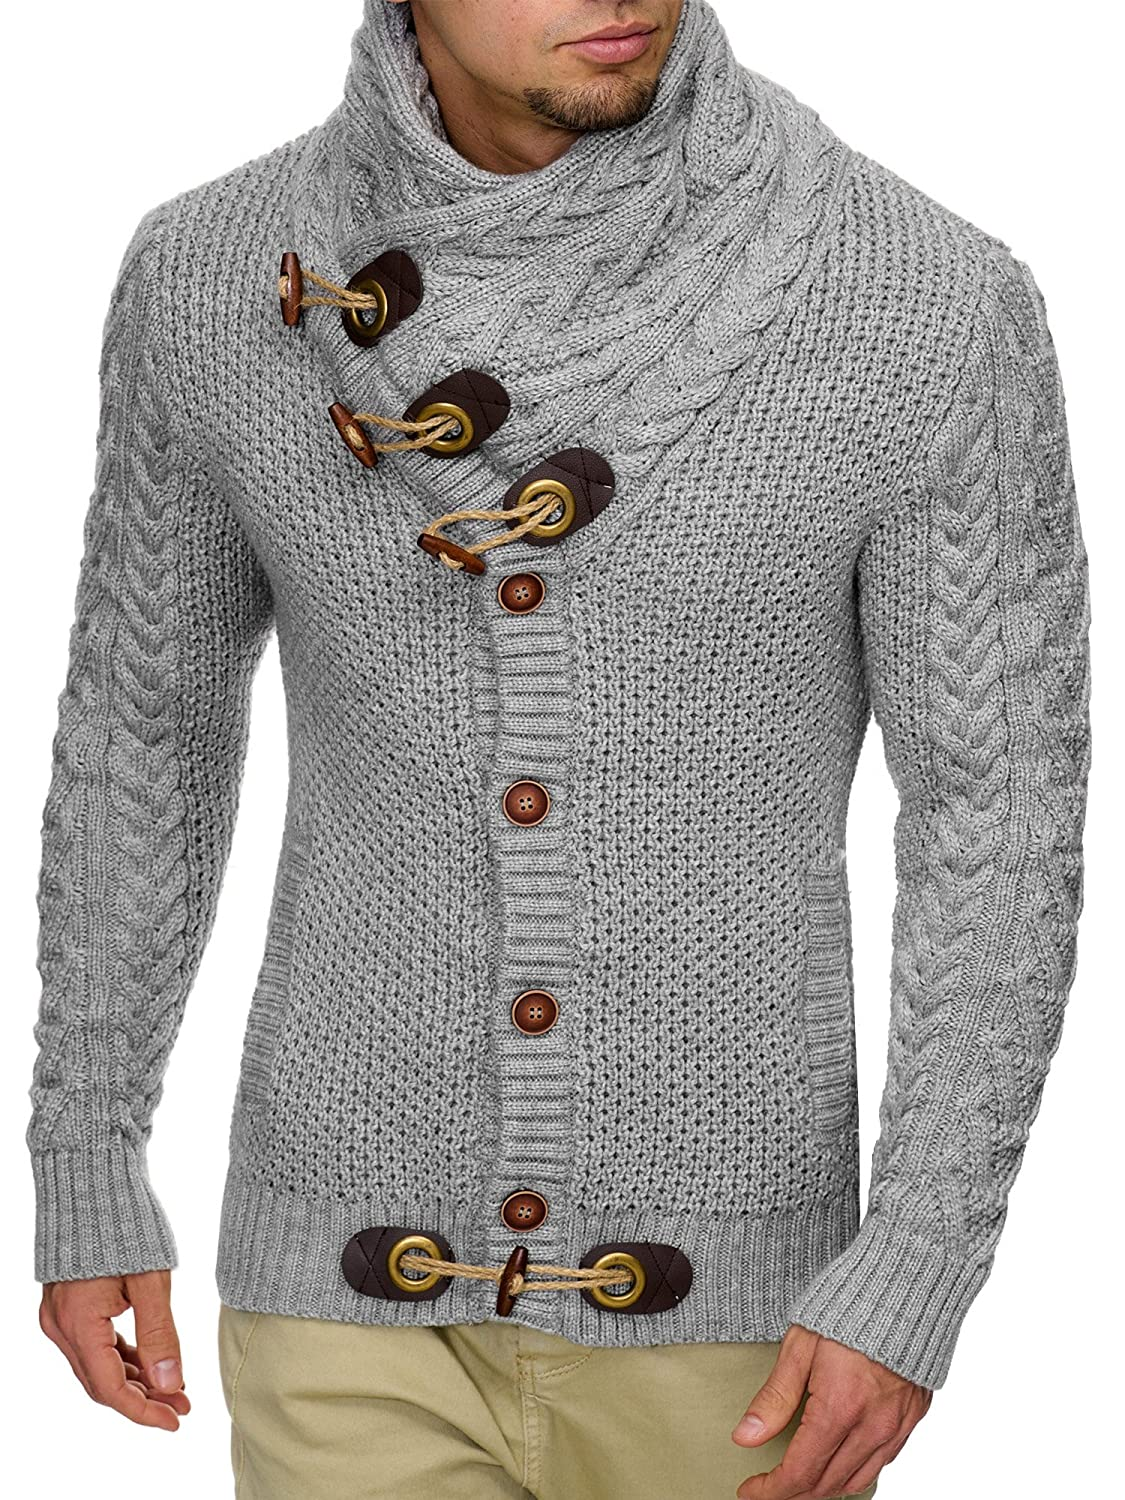 INDICODE Men's Knitted Sweater Cardigan Pullover Fort Worth White Black Grey Anthracite